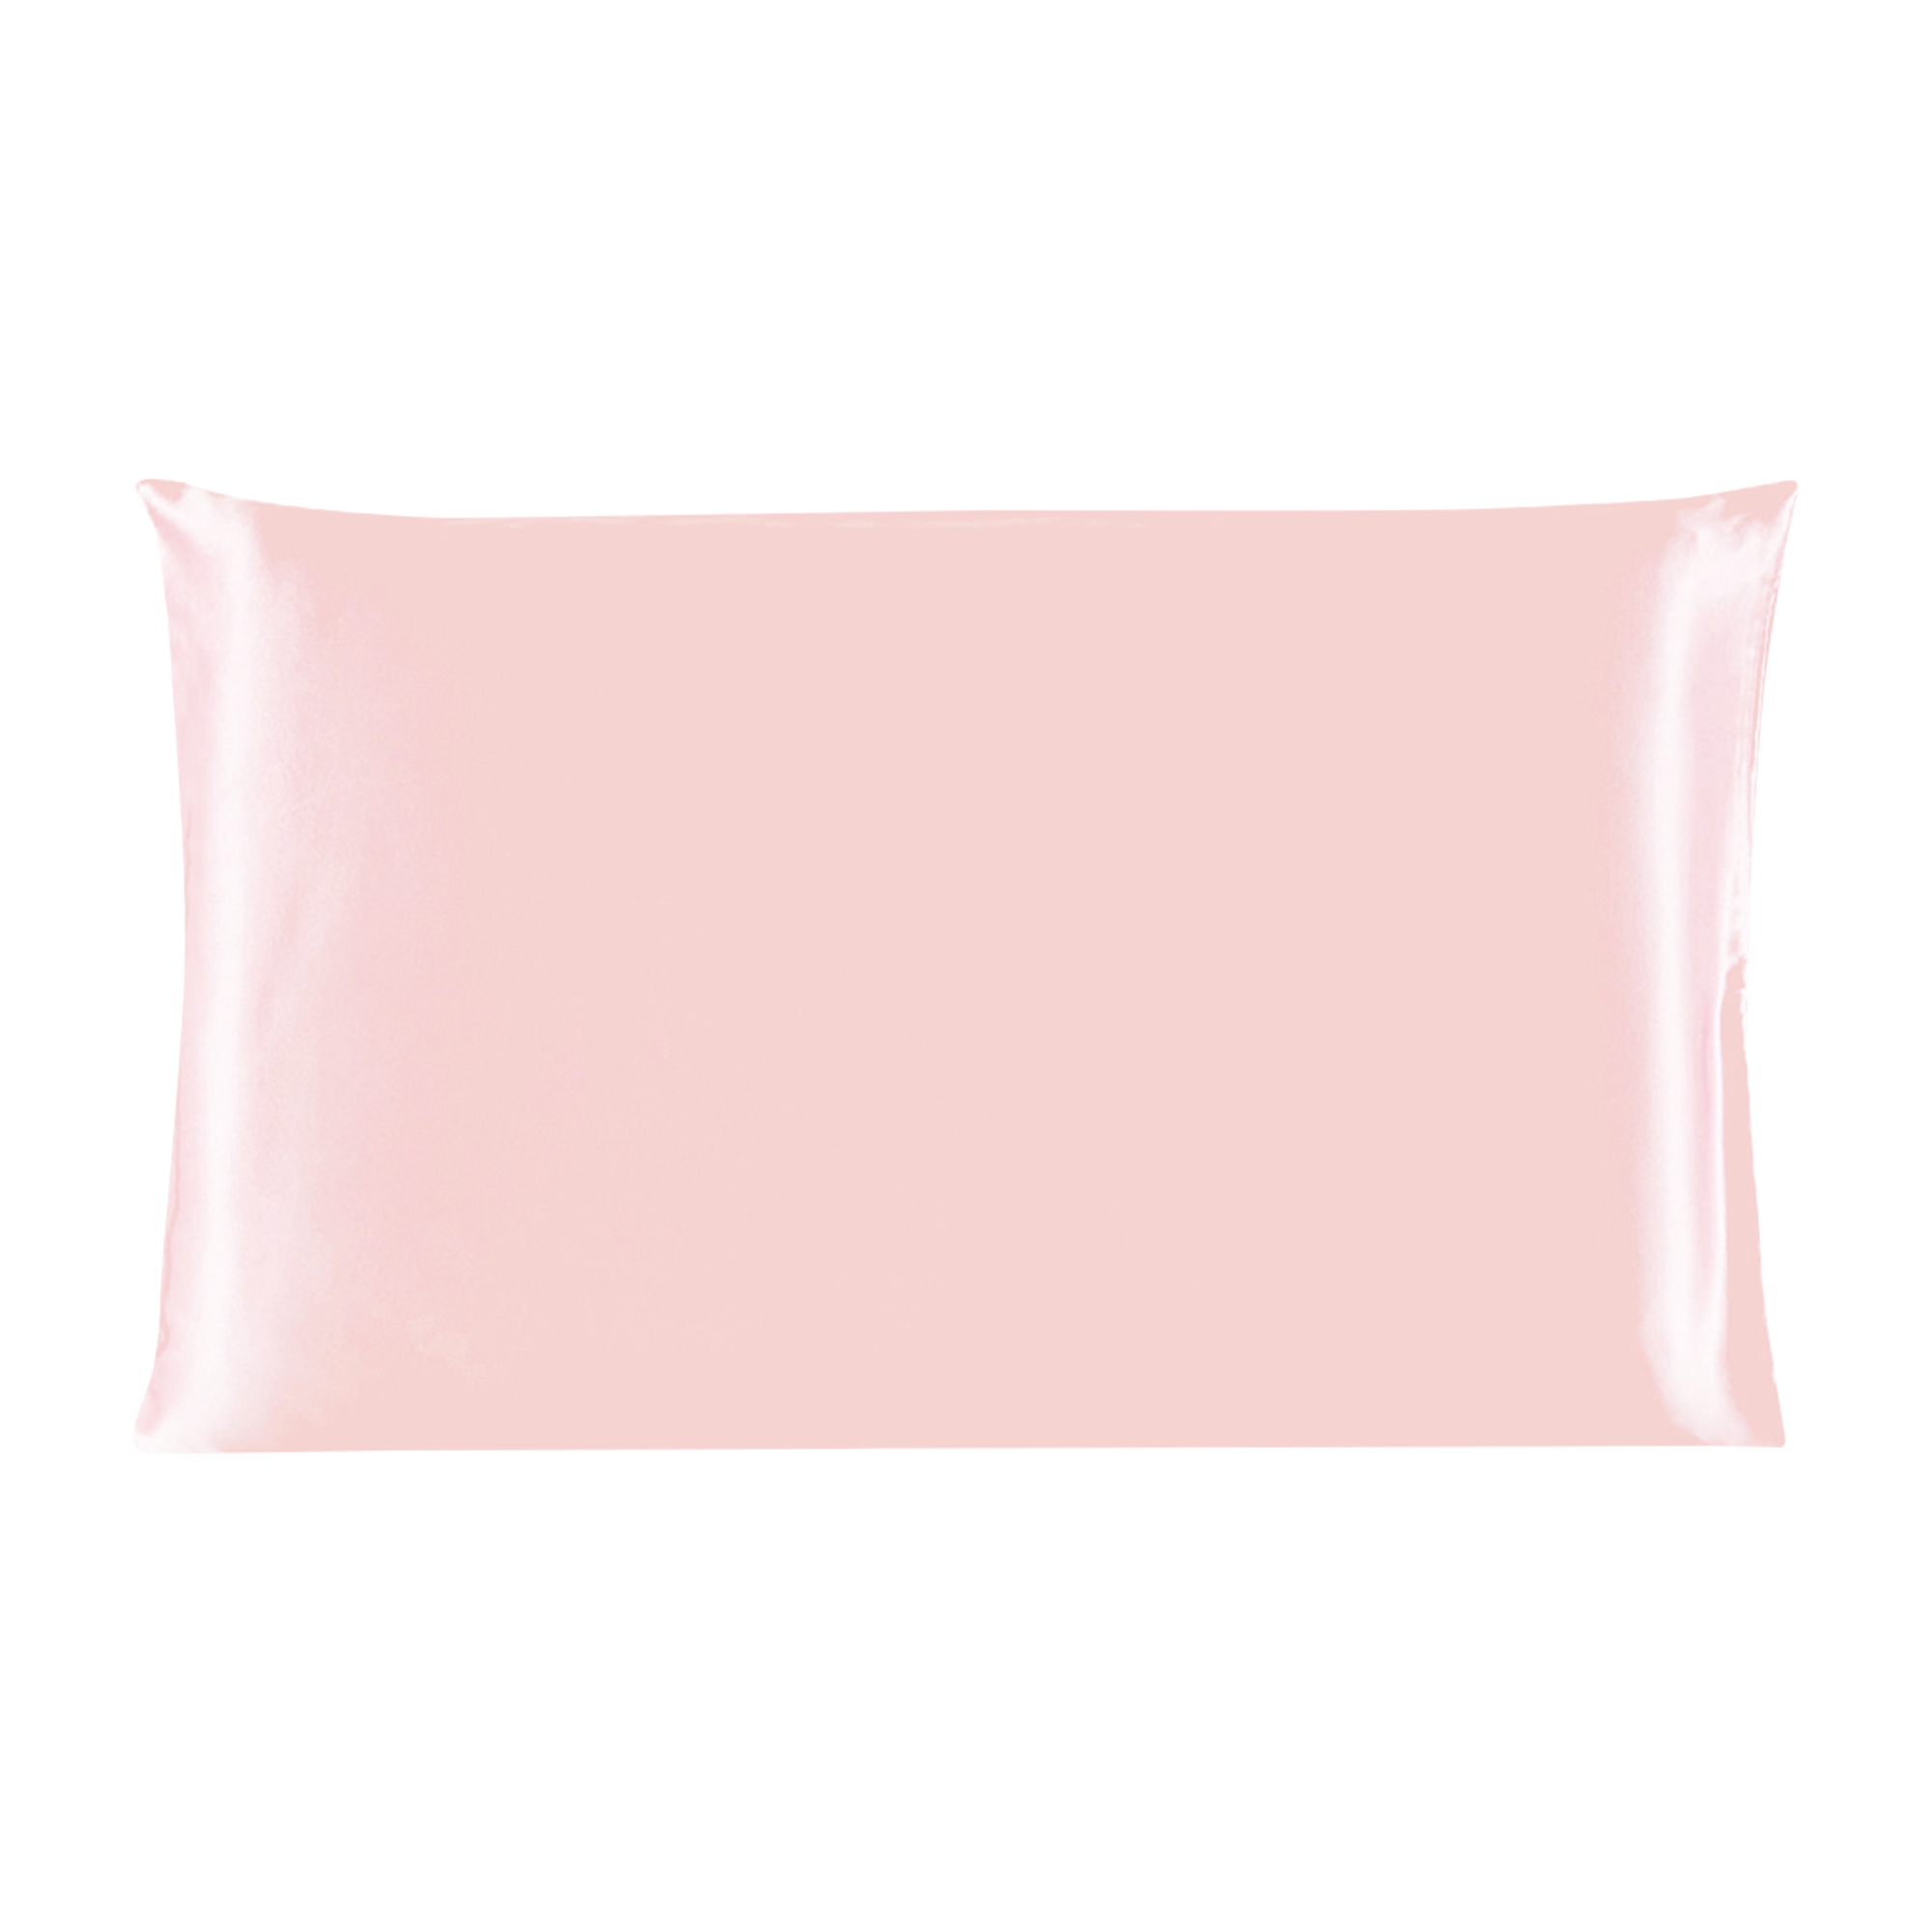 Piccocasa 100% Mulberry Silk Pillow Case Cover Pillowcase Pink Queen Size